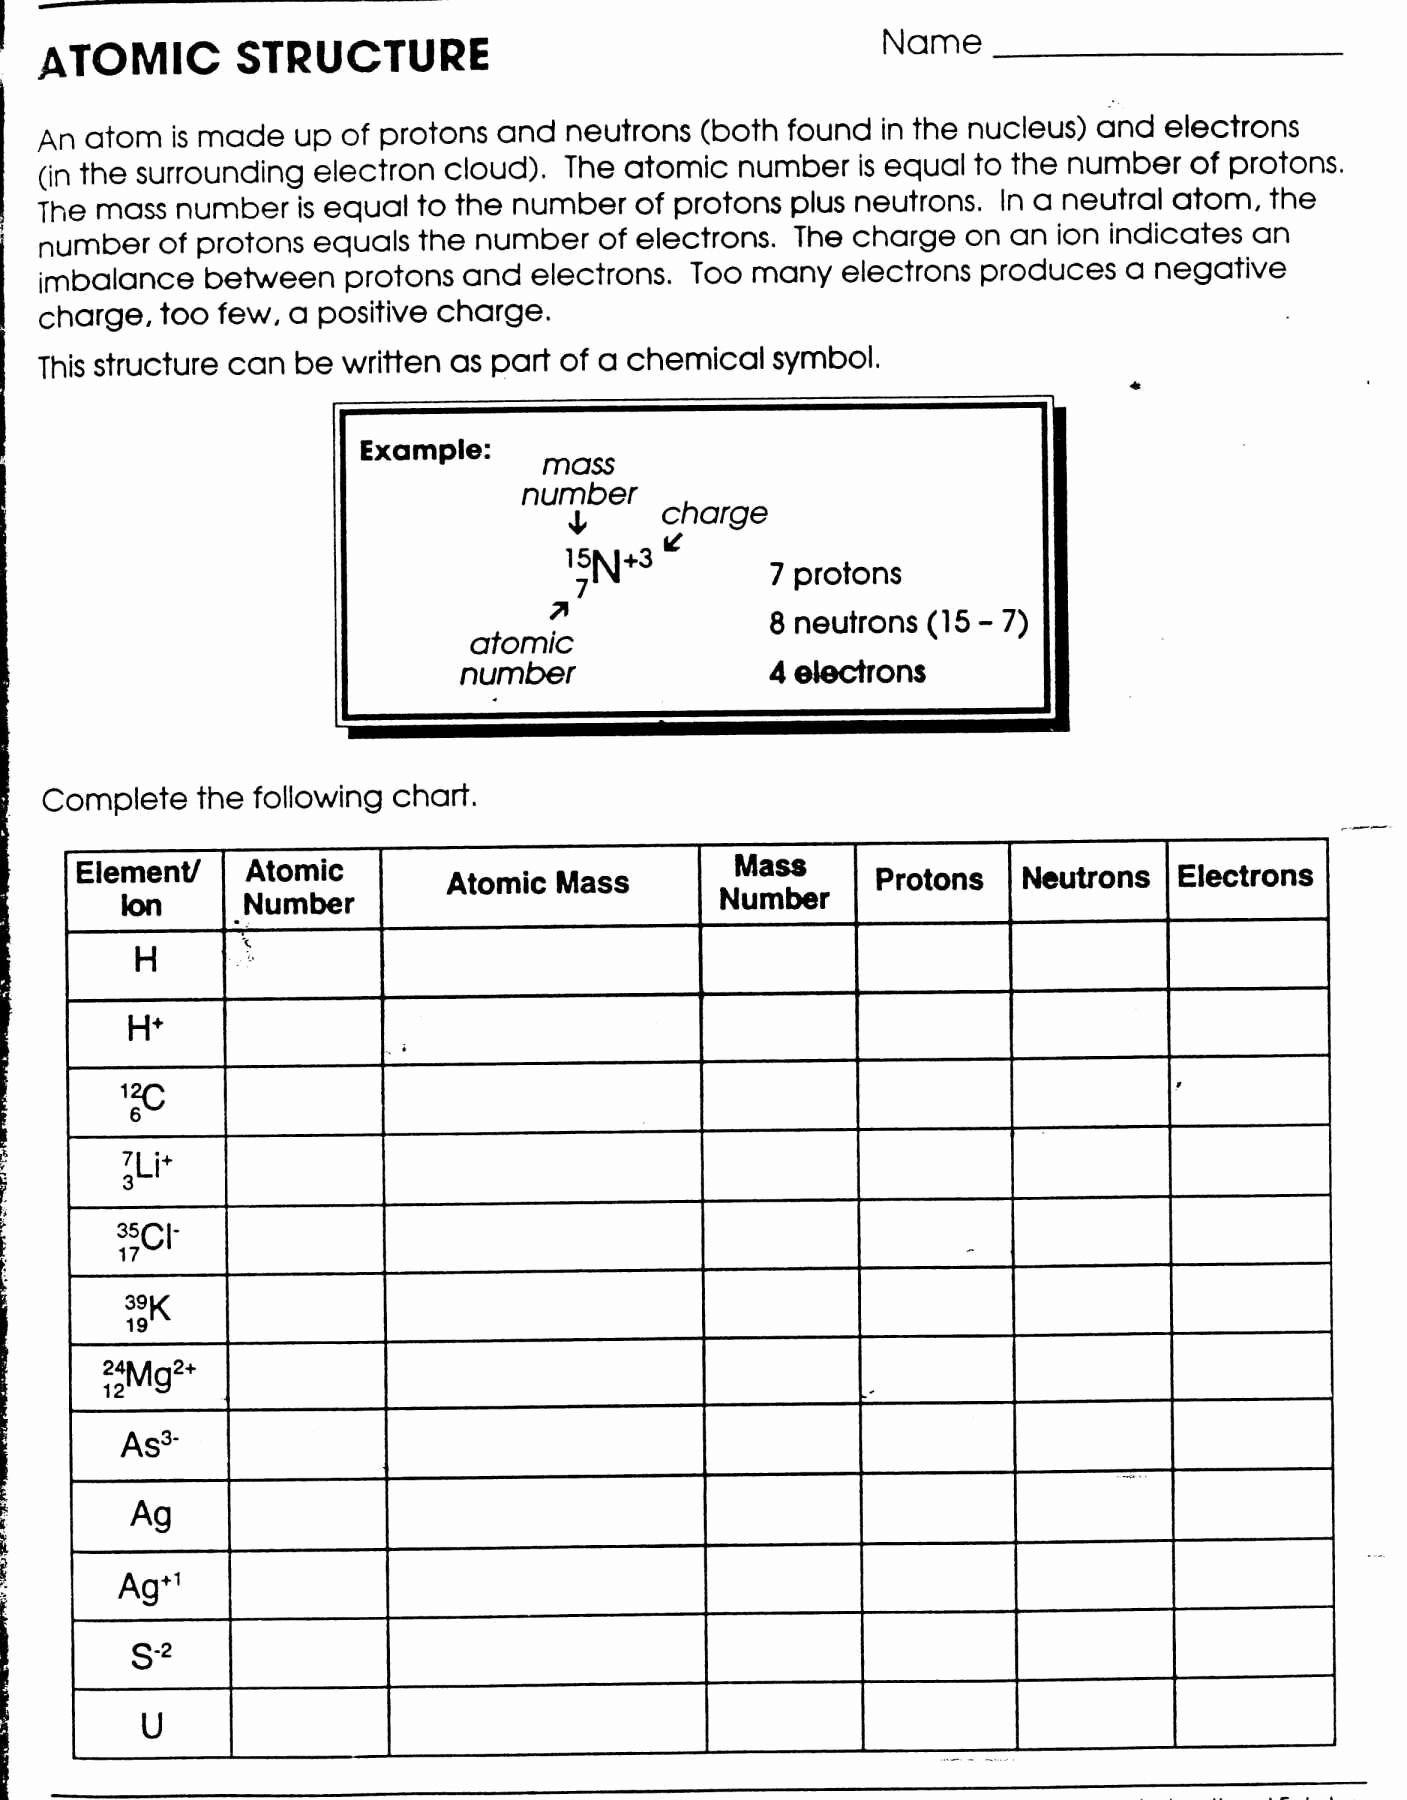 Quantum Numbers Practice Worksheet Luxury Protons Neutrons and Electrons Practice Worksheet Answer